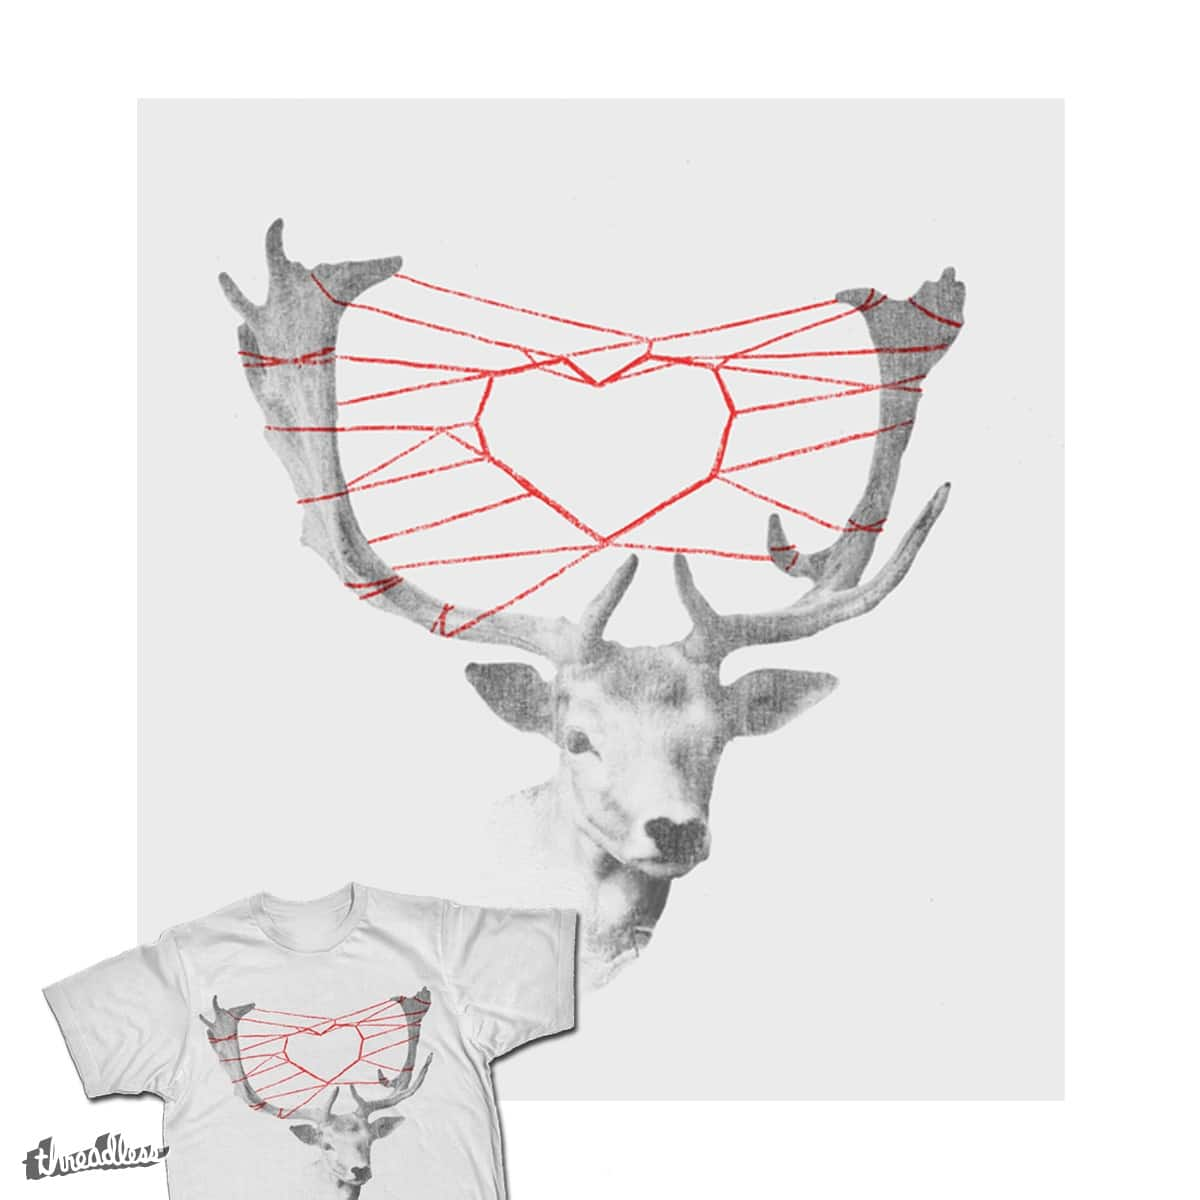 How are you deerie by radiomode on Threadless